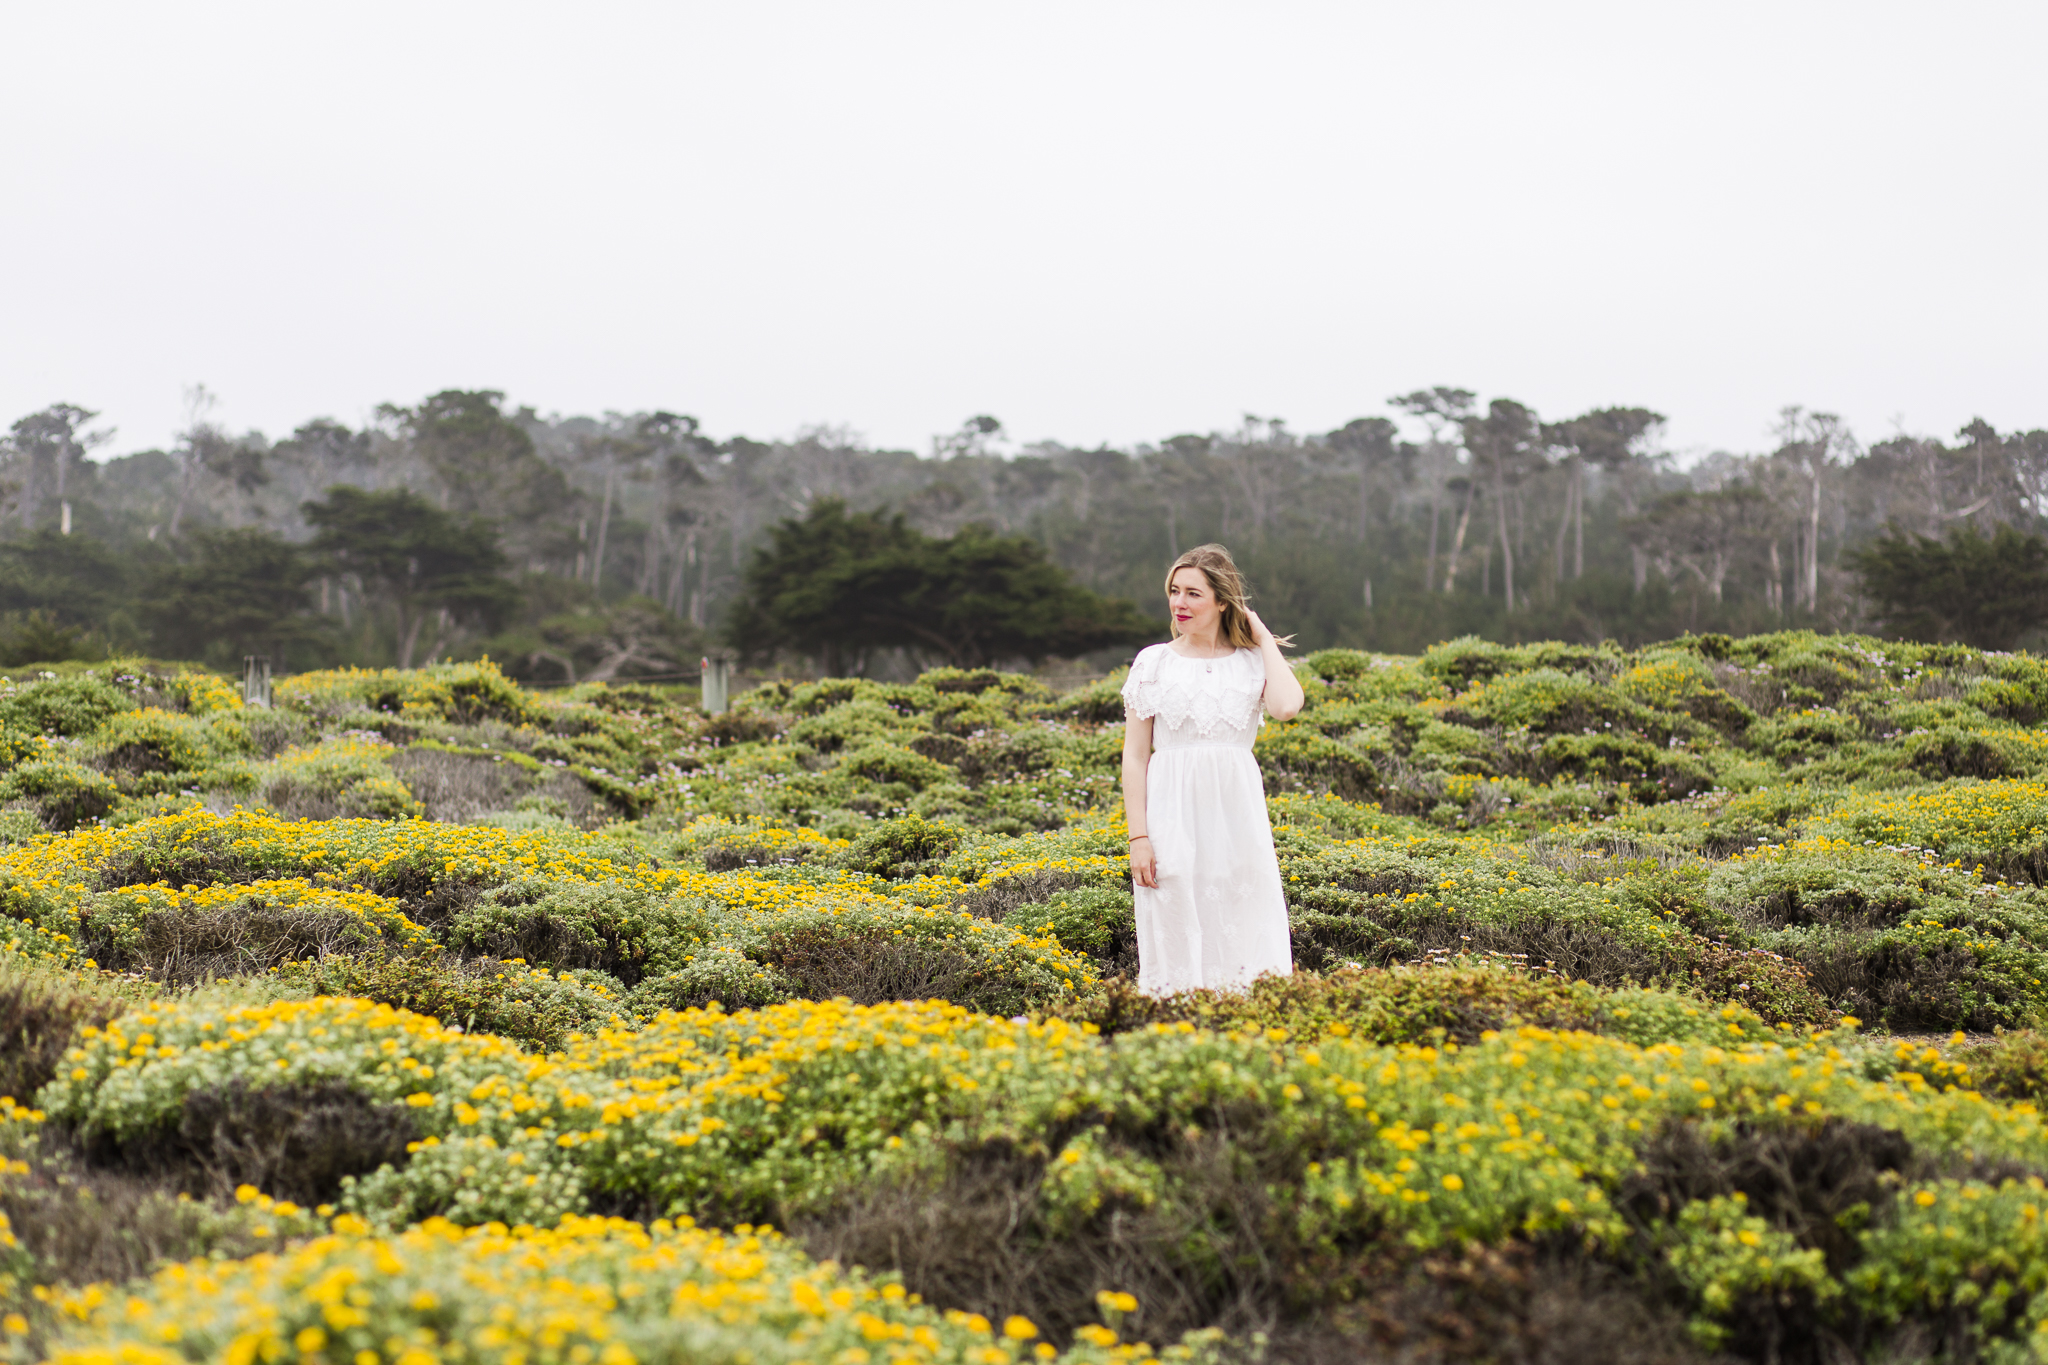 14 weeks pregnant, on 17-mile drive in Carmel, California